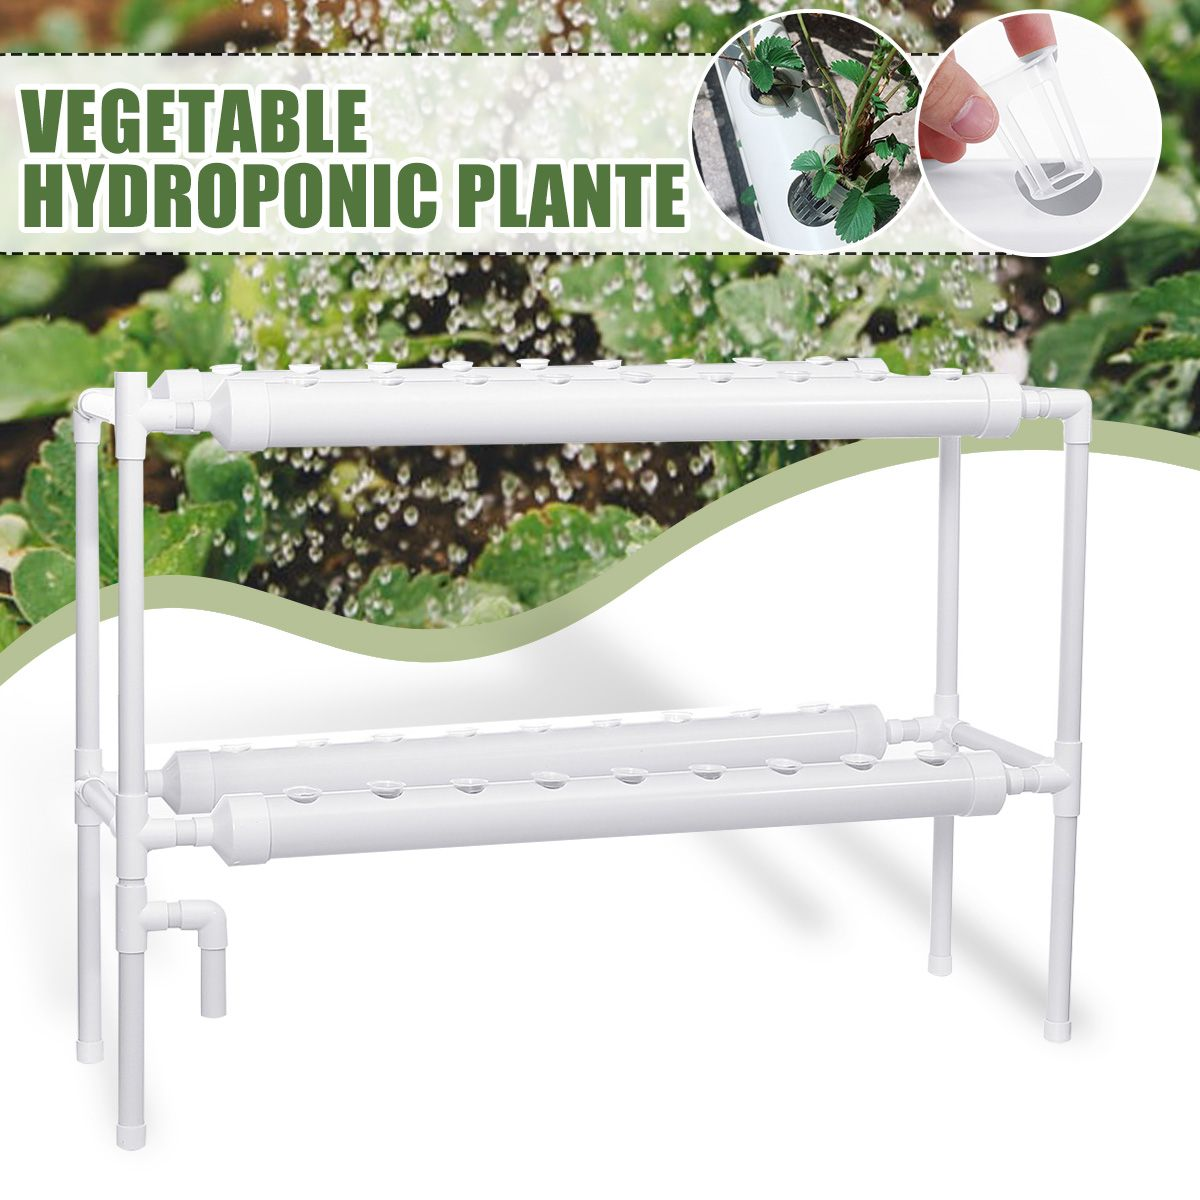 220V/110V Plant Hydroponic Systems Grow Kit 36 Holes Nursery Pots Anti Pest Soilless Cultivation Indoor Garden Culture Planter